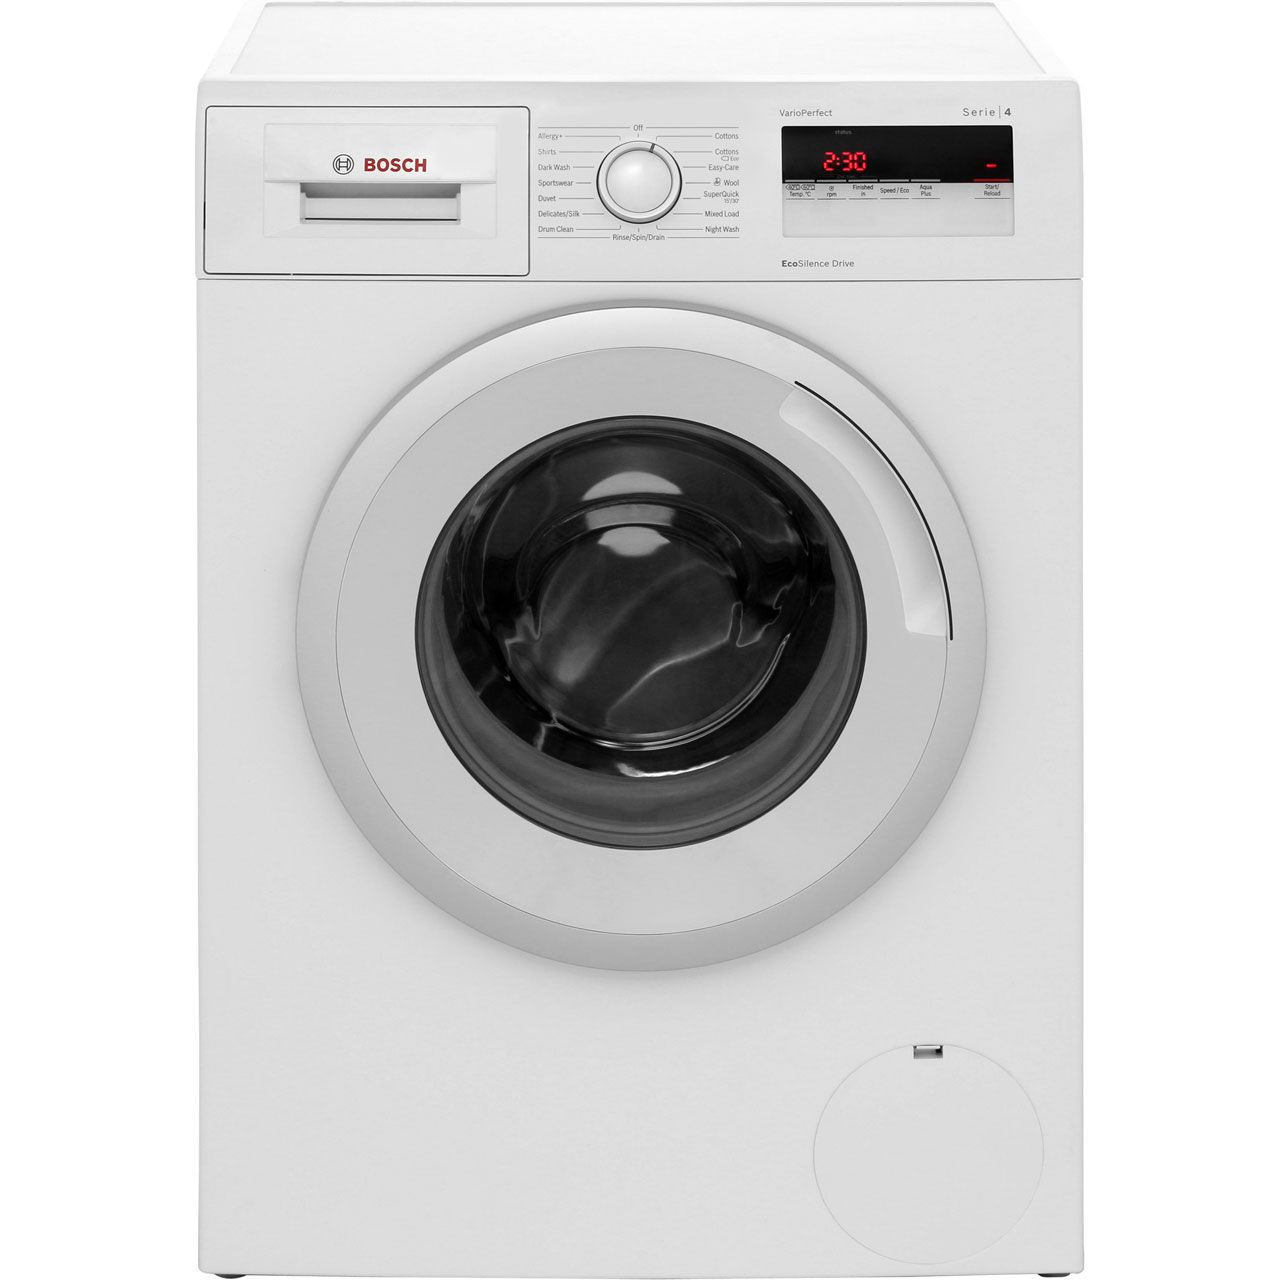 Bosch WAN24100GB Freestanding washing machine, 7 Kg Load, 1200 rpm Spin, A+++ Rated, White